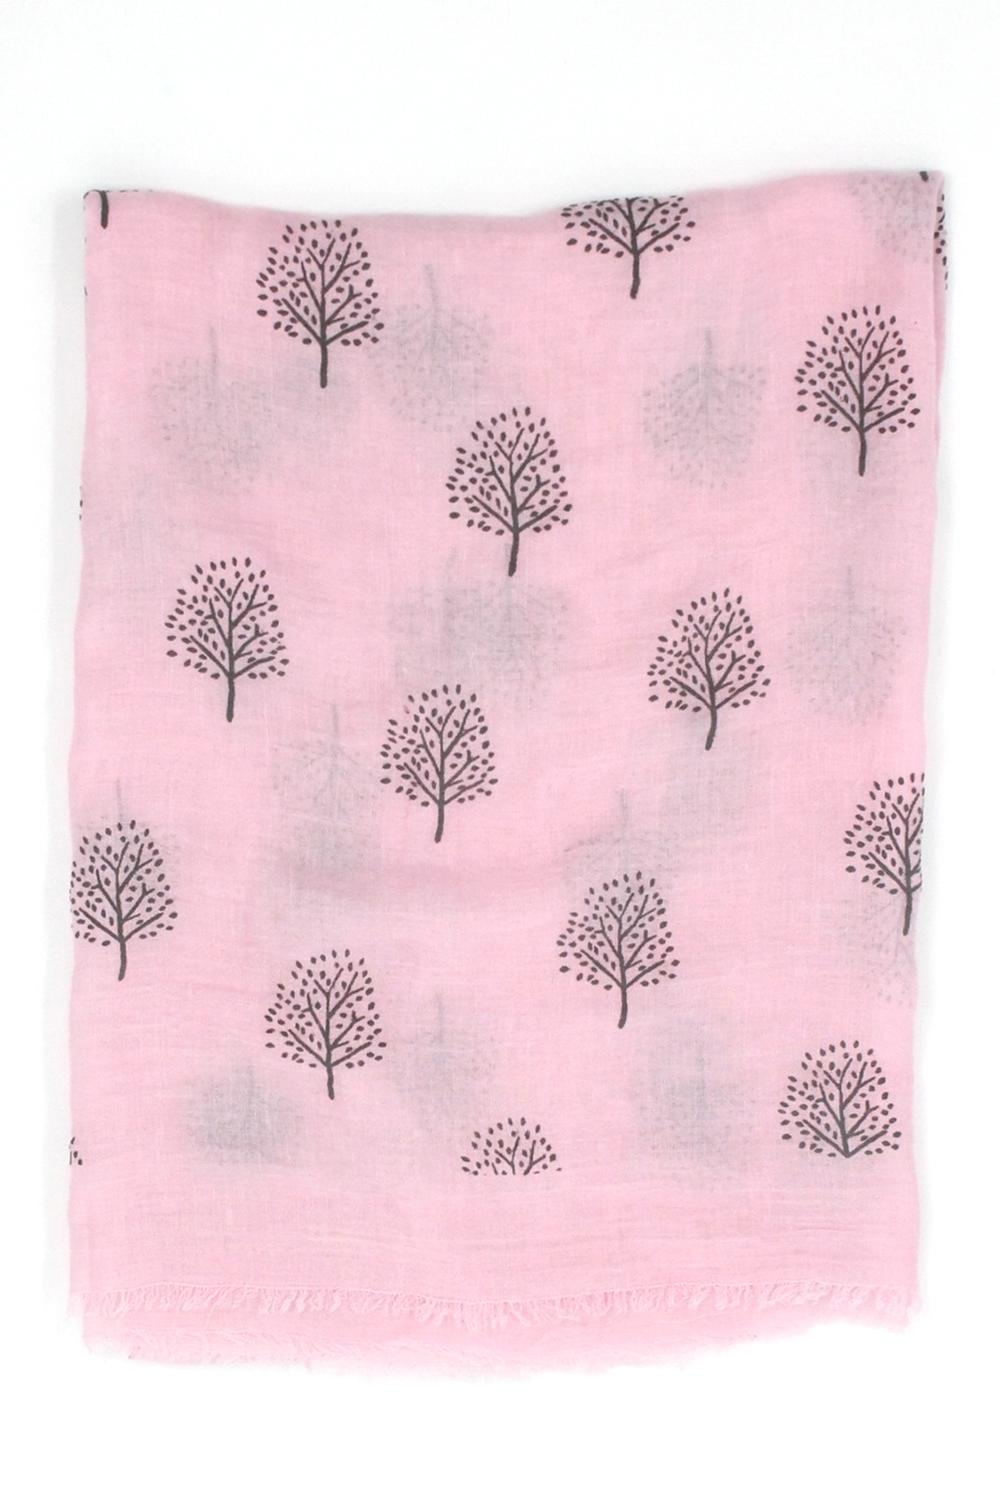 Mulberry tree scarf - pink